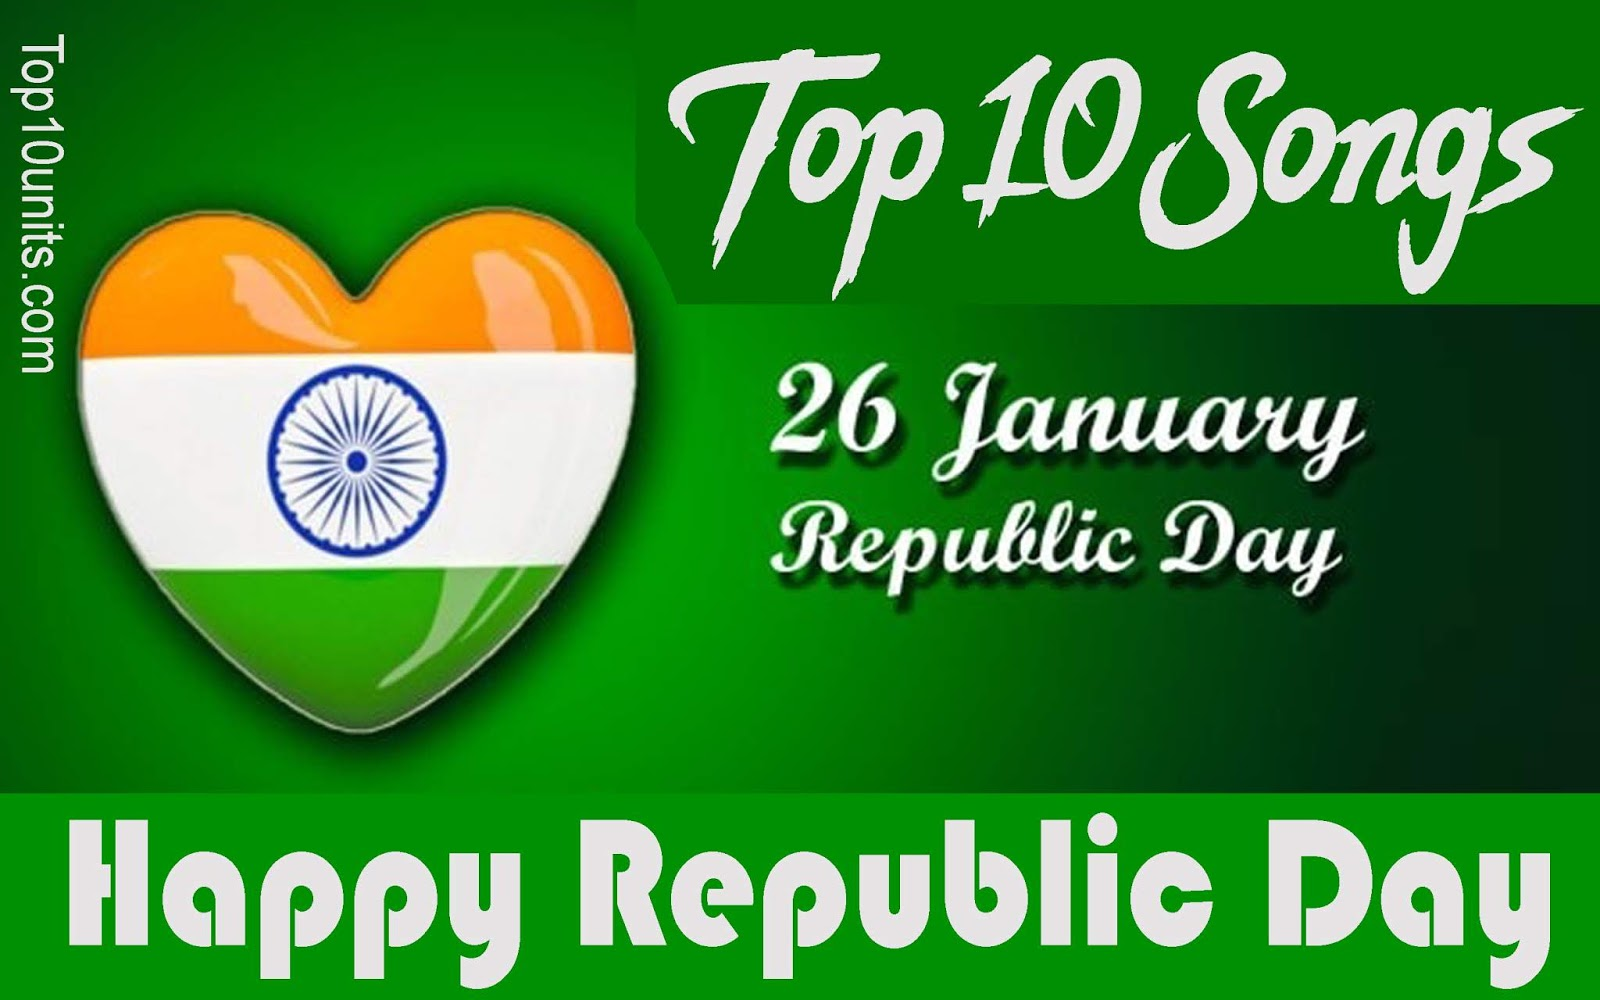 Top 10 Happy Republic Day Songs In Hindi 2018 Republic Day Special